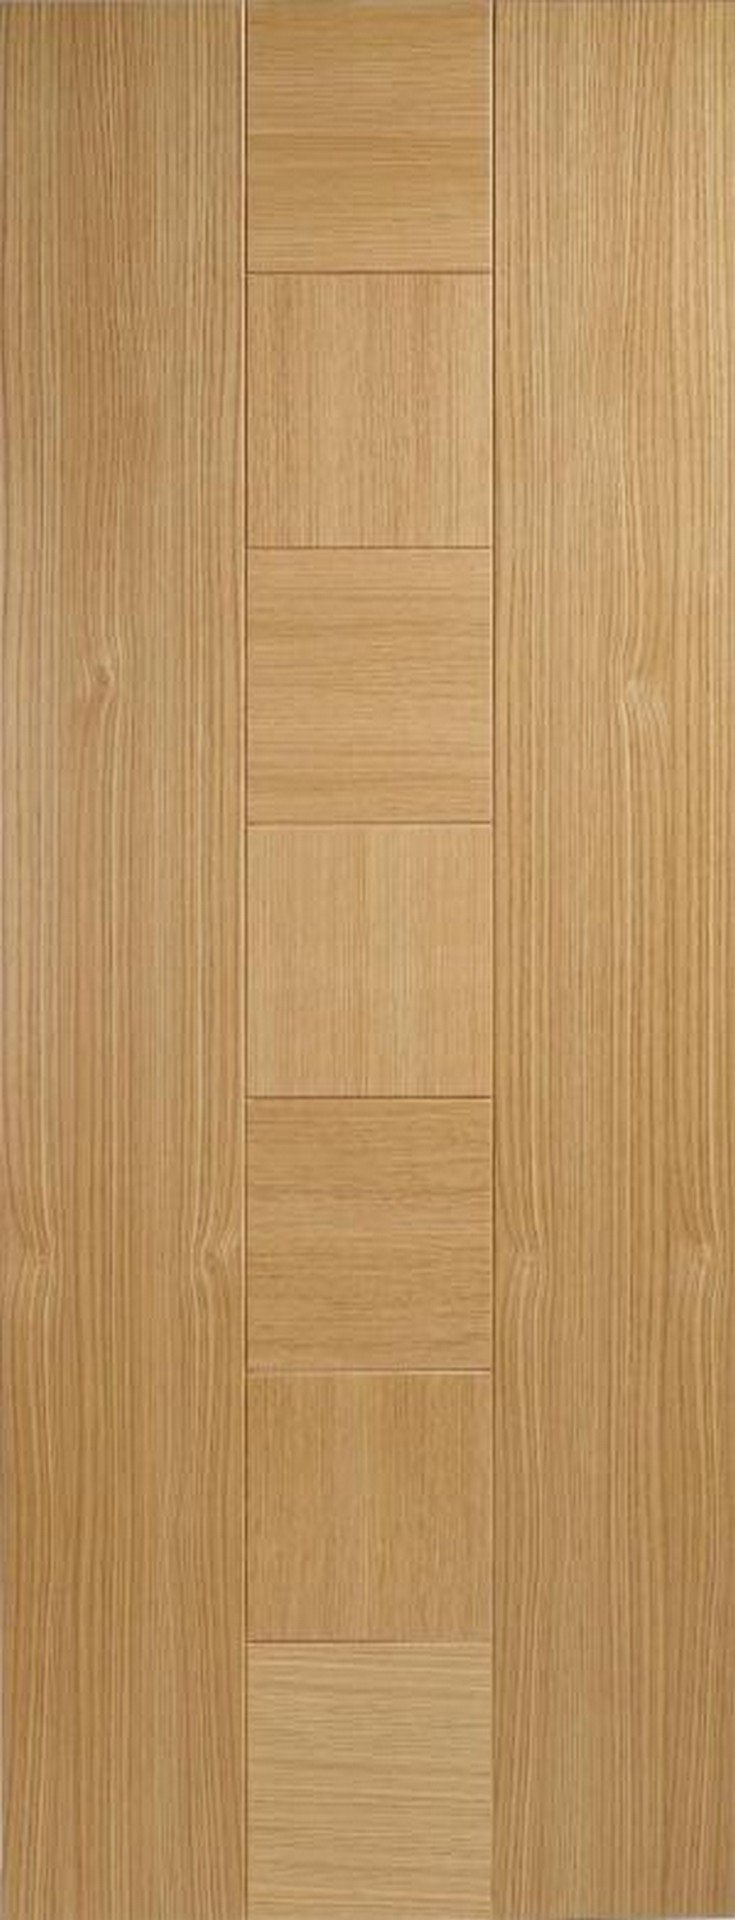 LPD Internal Oak Catalonia Door-Door Store Rotherham